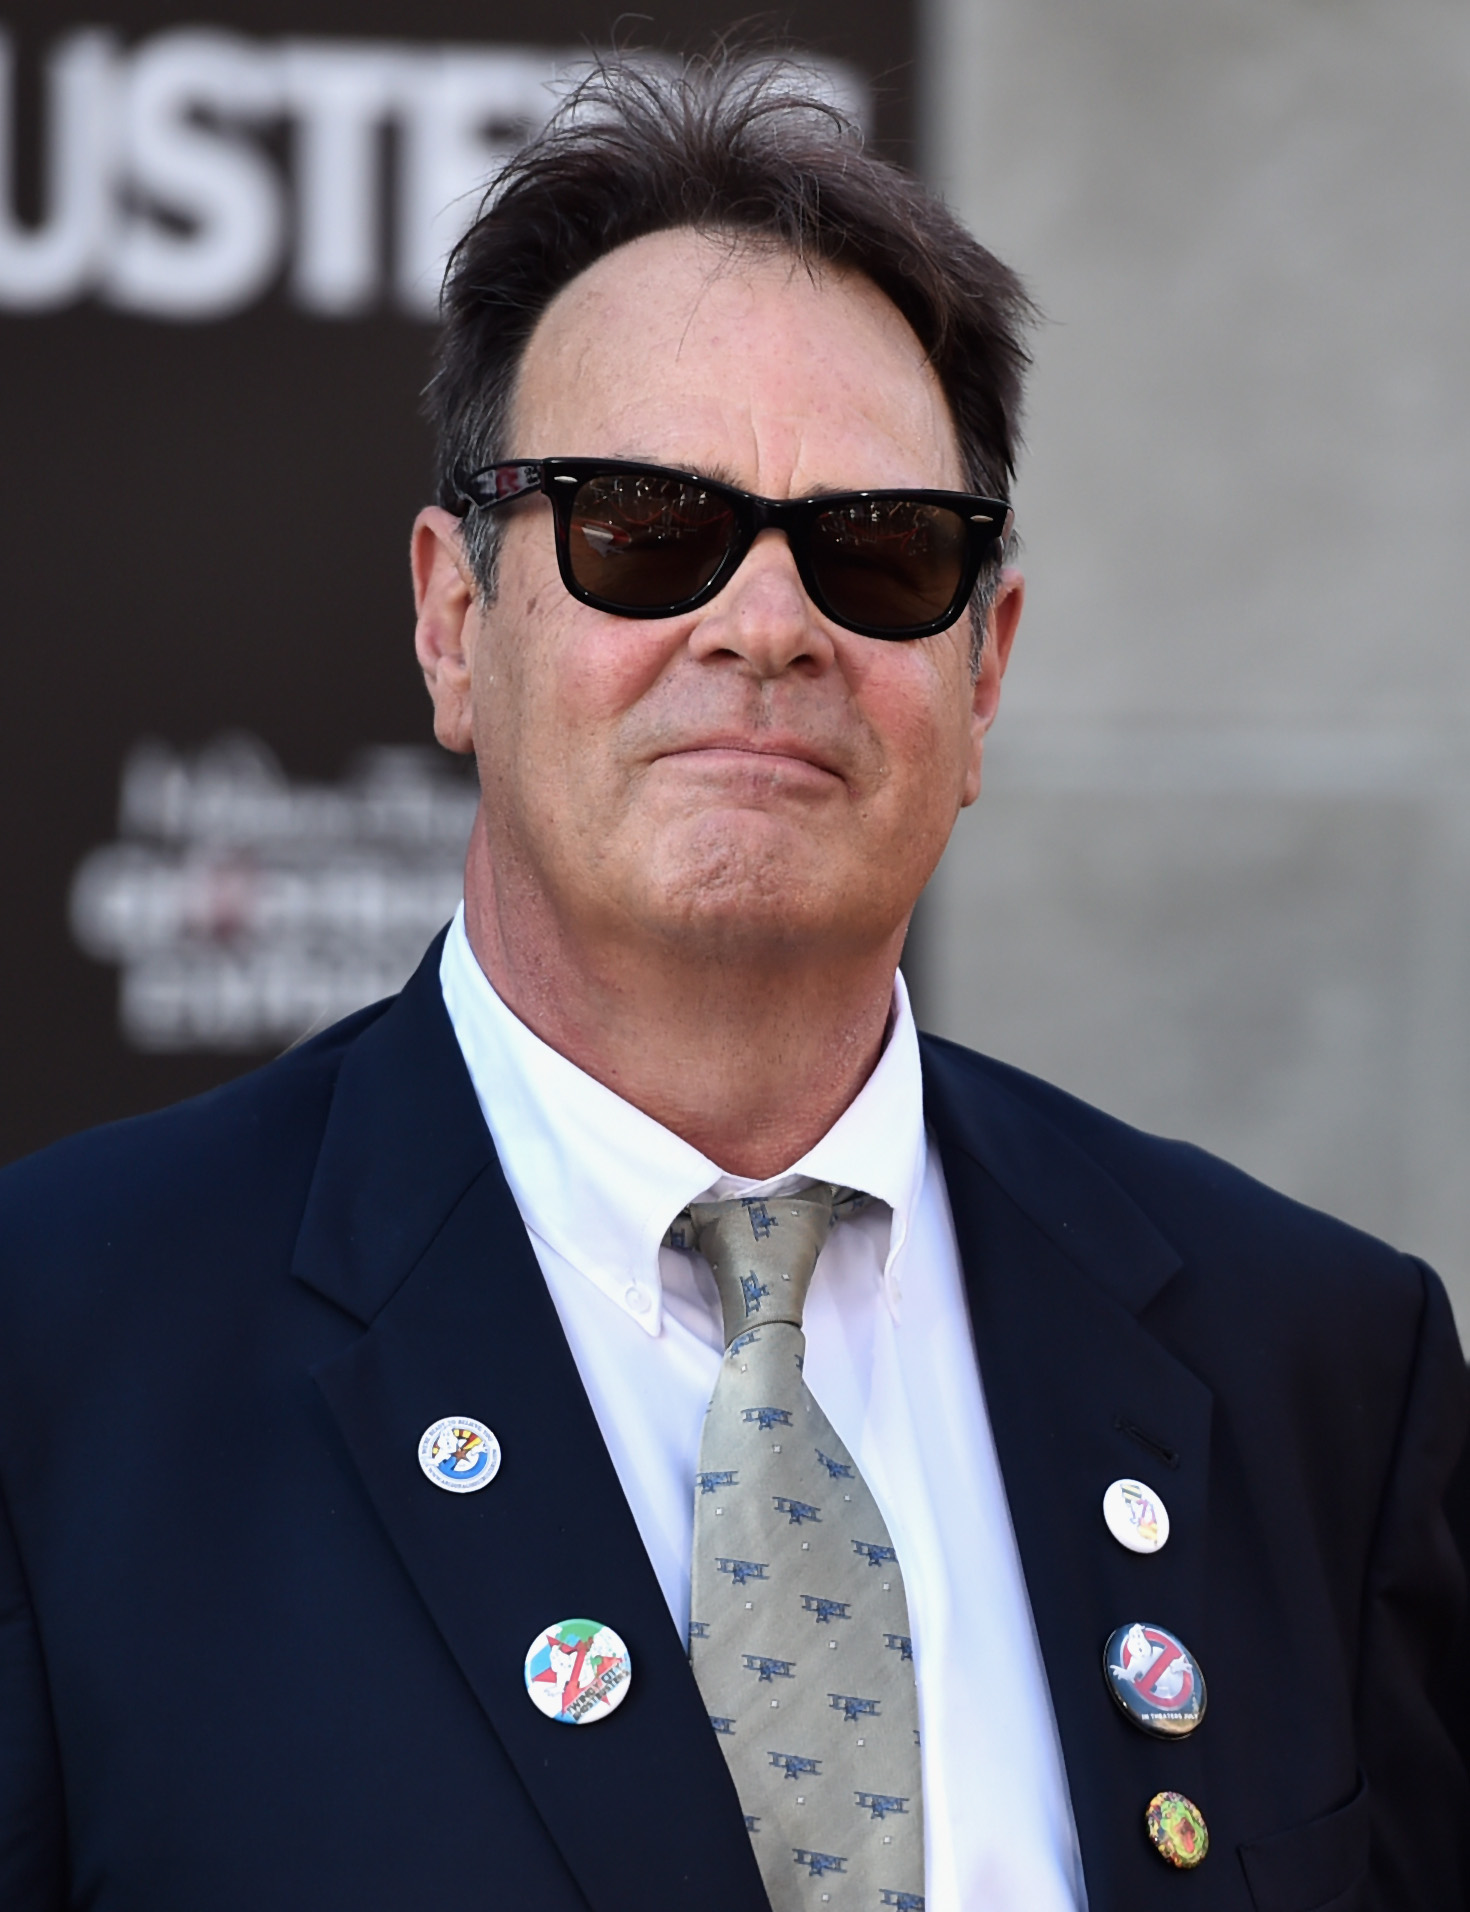 Actor Dan Aykroyd arrives at the Premiere of Sony Pictures' 'Ghostbusters' at TCL Chinese Theatre on July 9, 2016 in Hollywood, California.